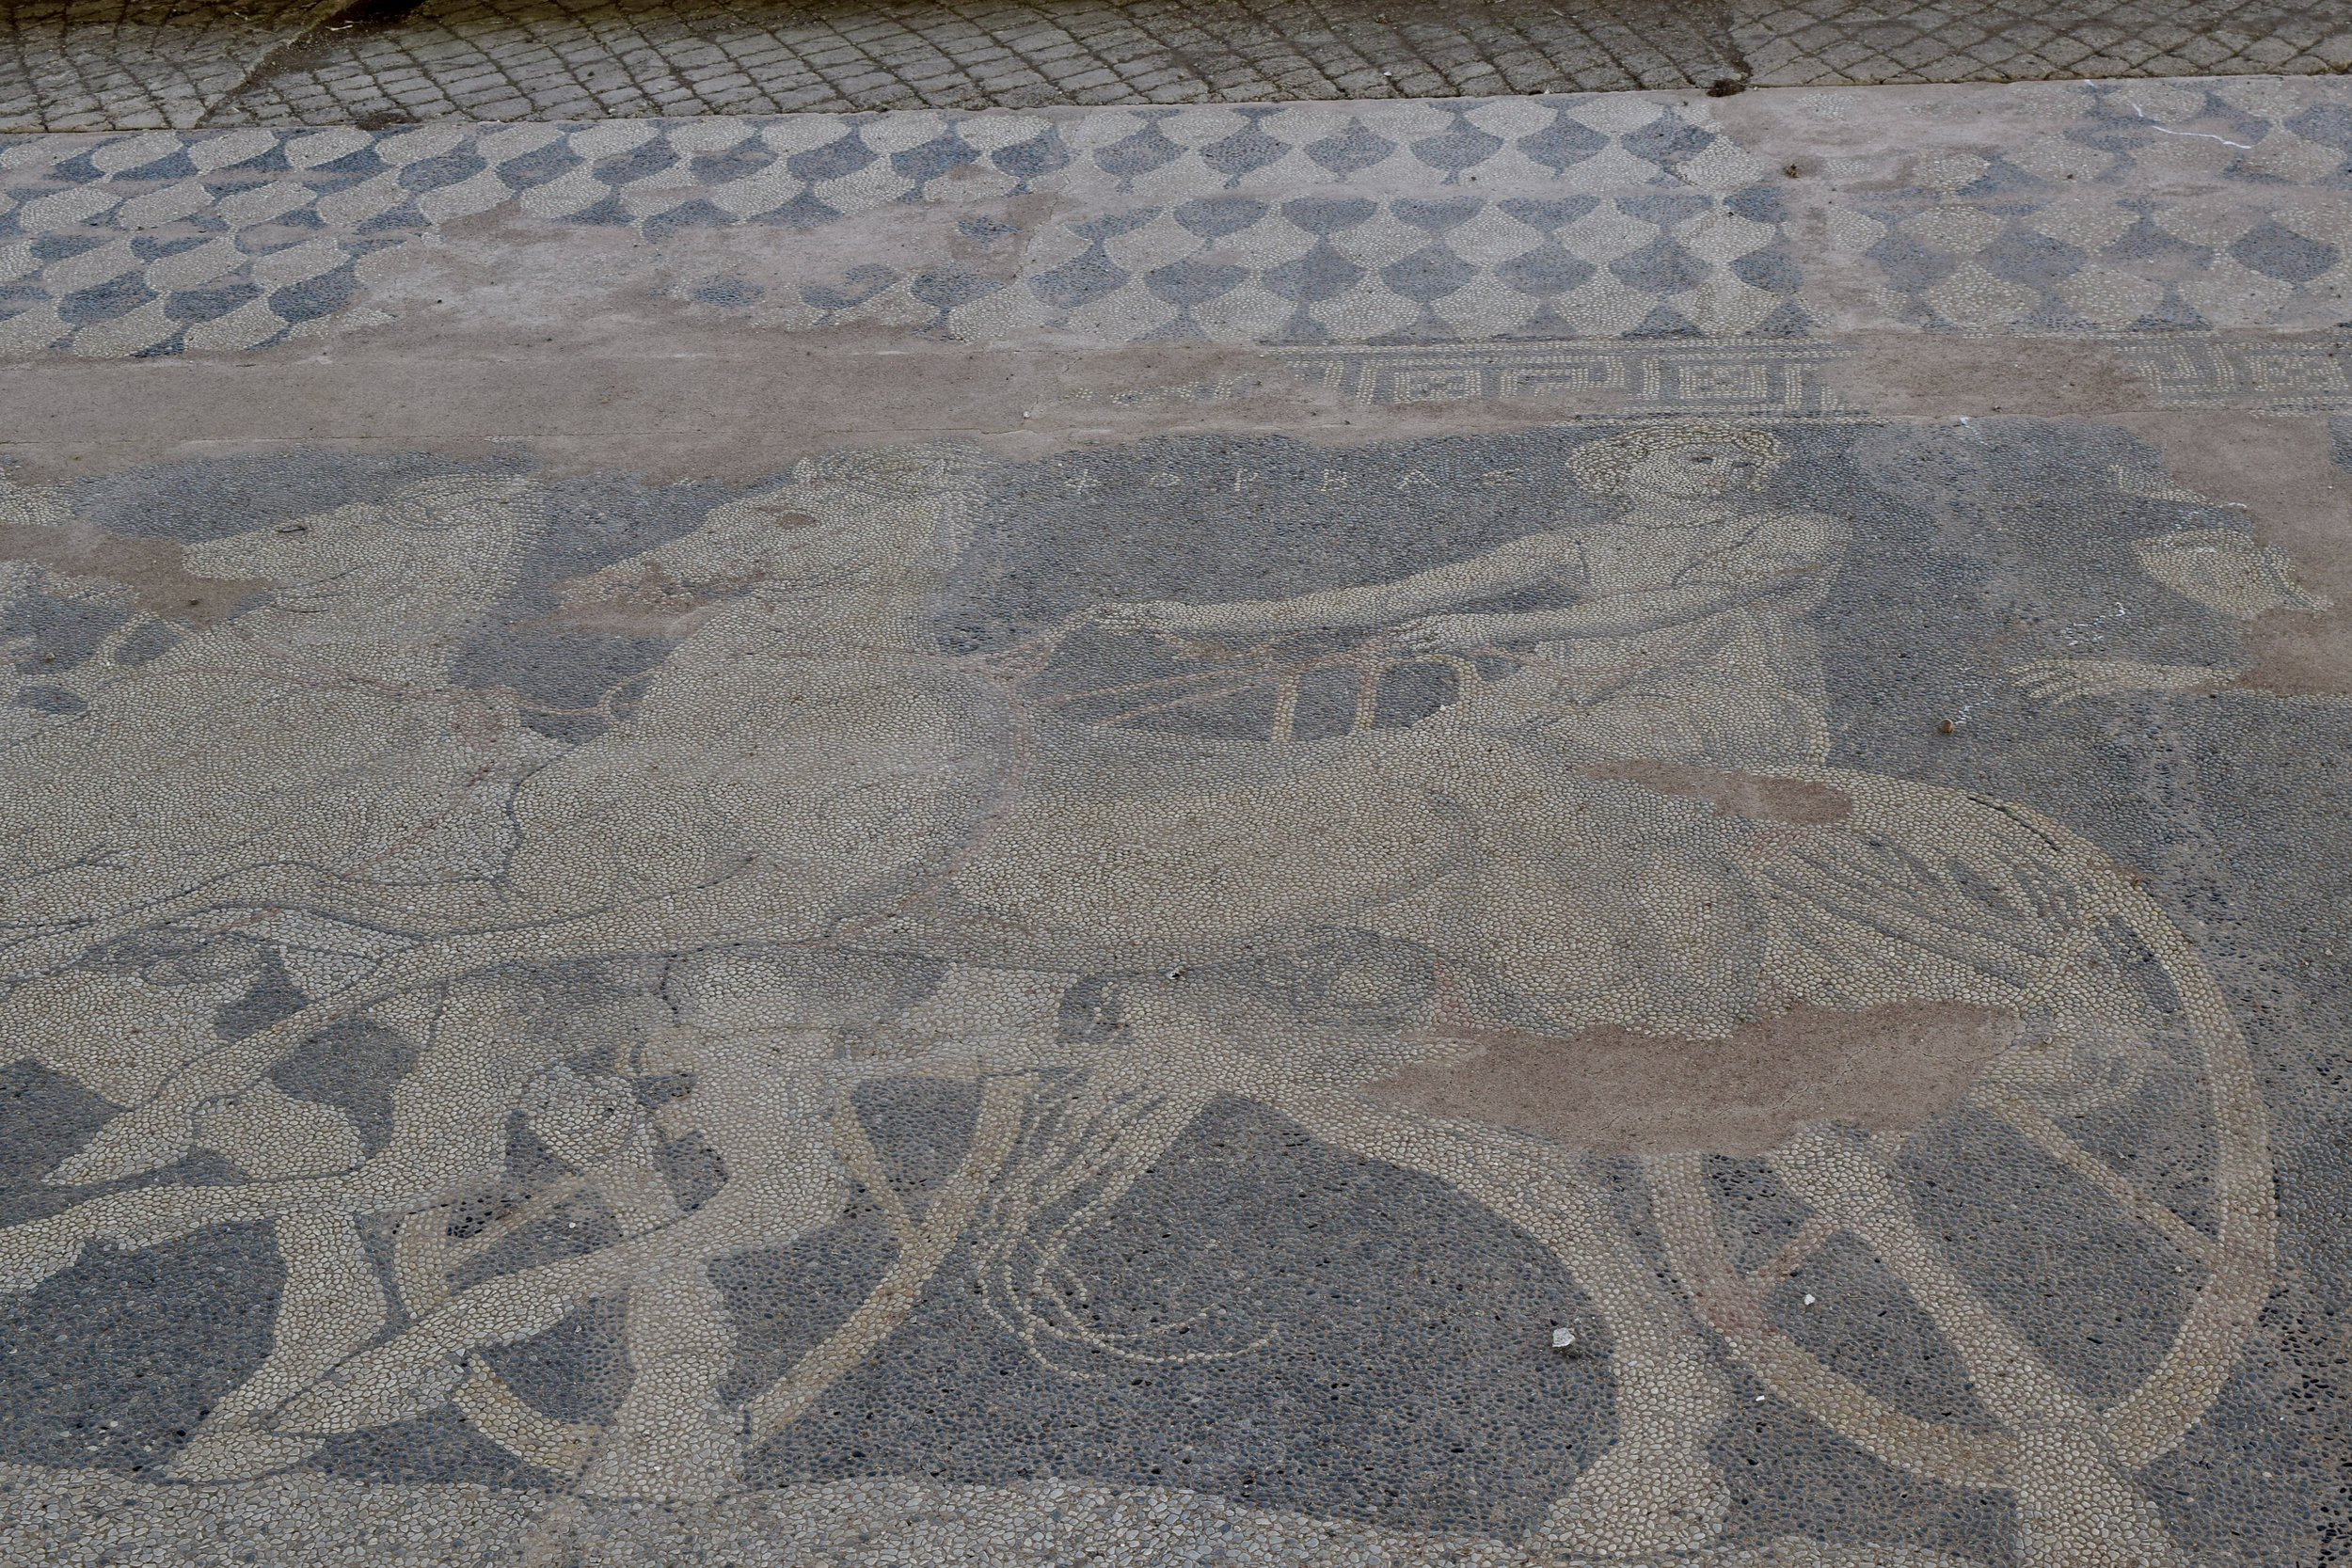 Mosaic of the abduction of Helen by Theseus